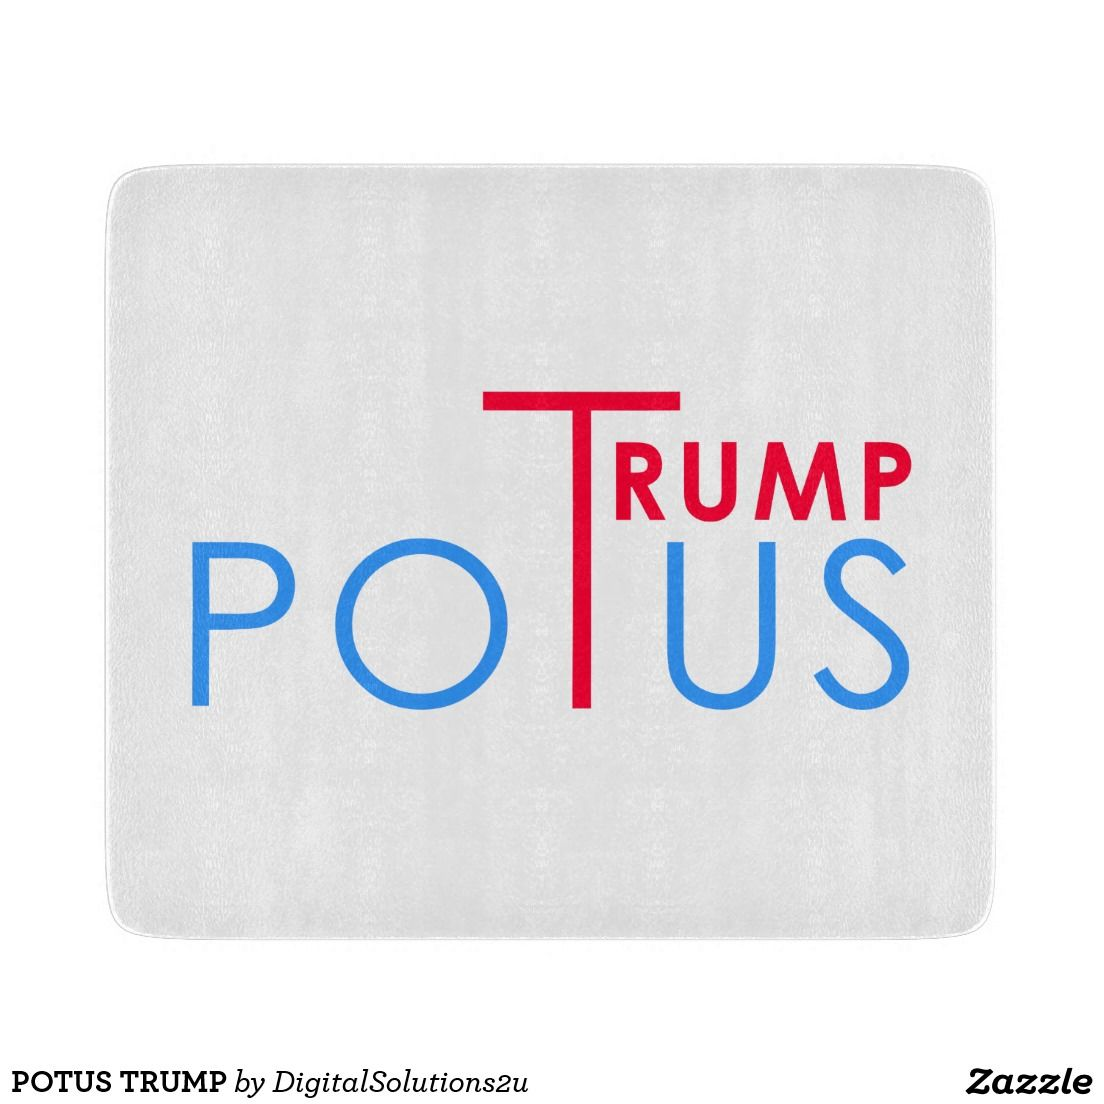 POTUS TRUMP CUTTING BOARD